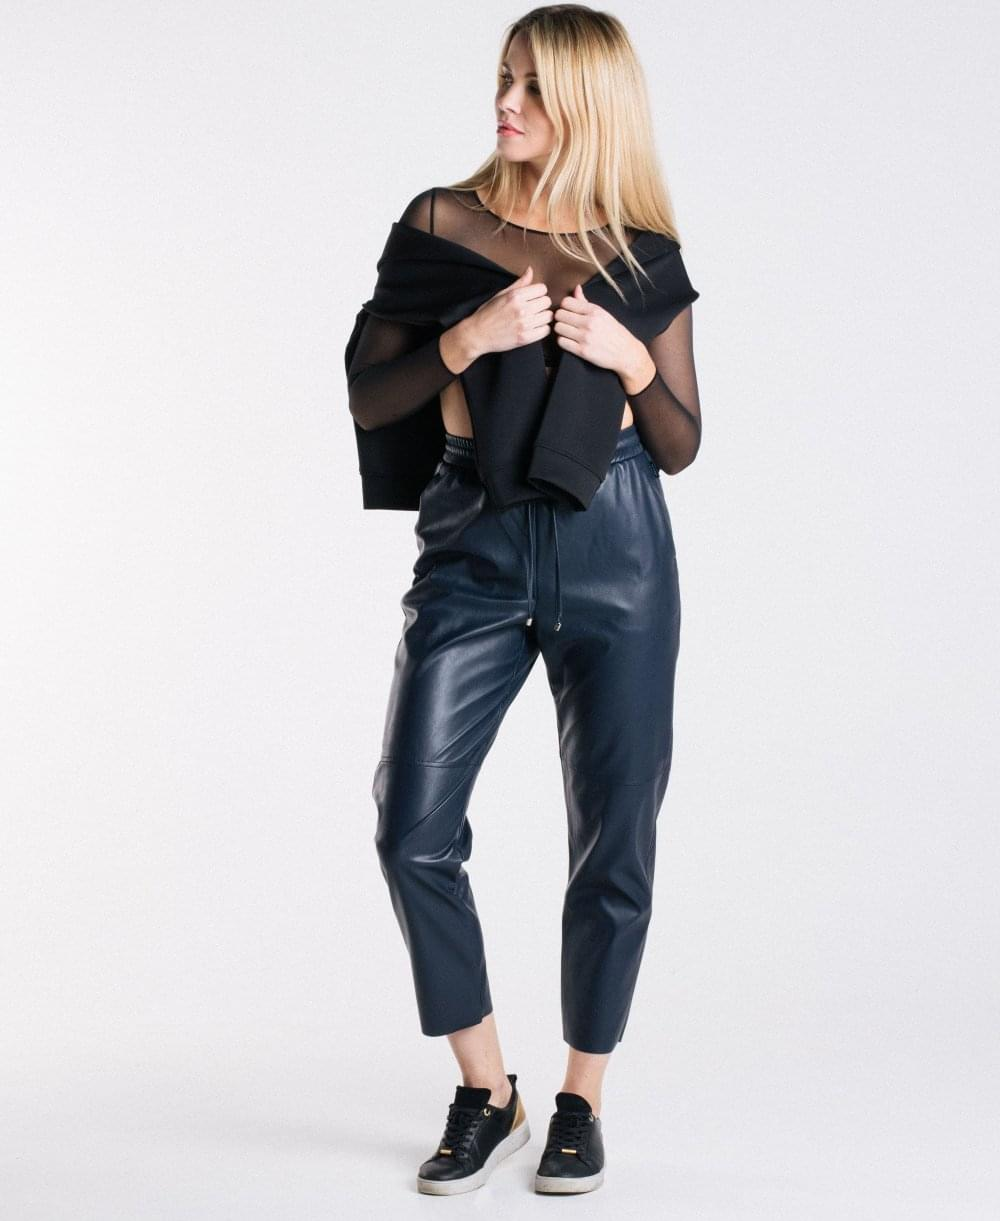 5cac24c6a3532 MaxMara Celso Faux Leather Trousers - Leggings from luxury-legs.com UK